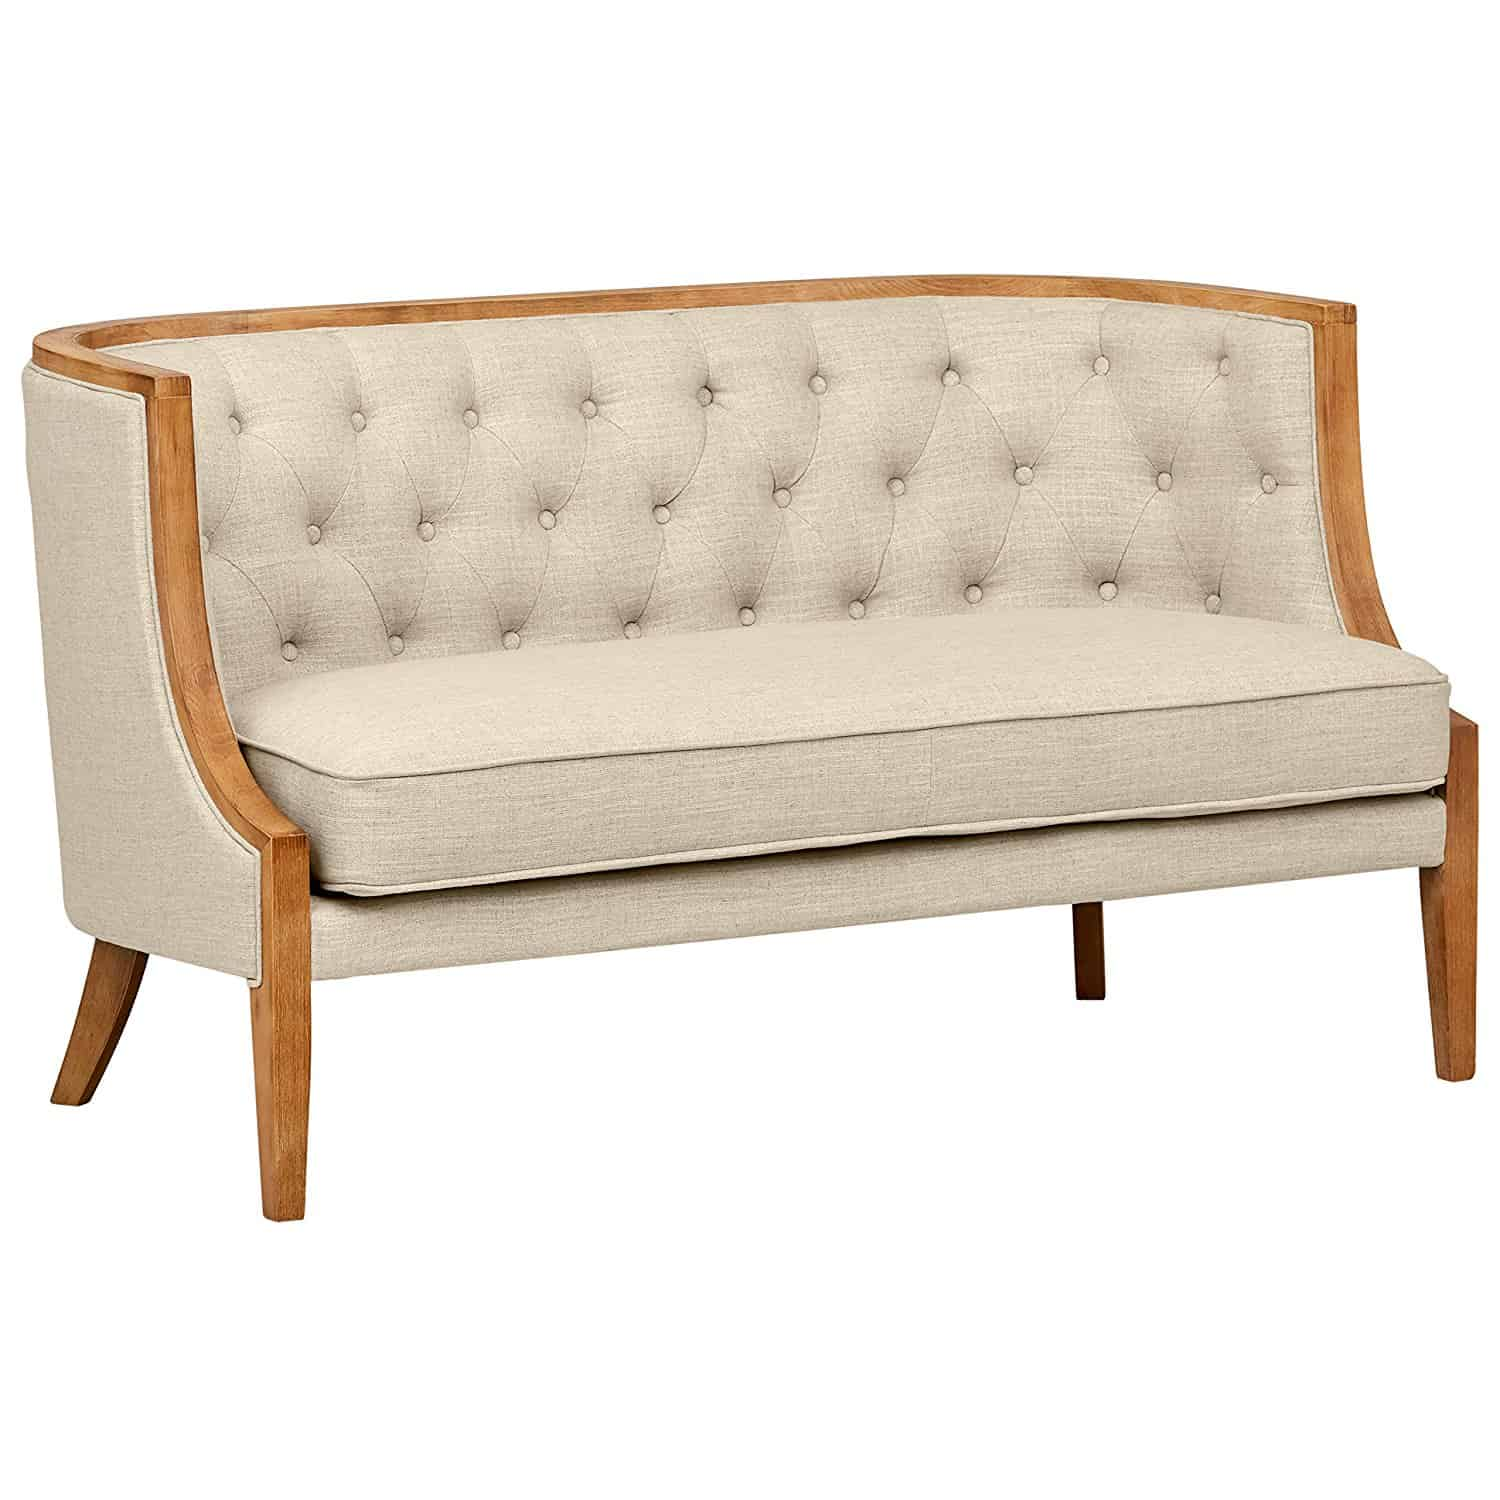 Stone & Beam Laurel Rounded Loveseat